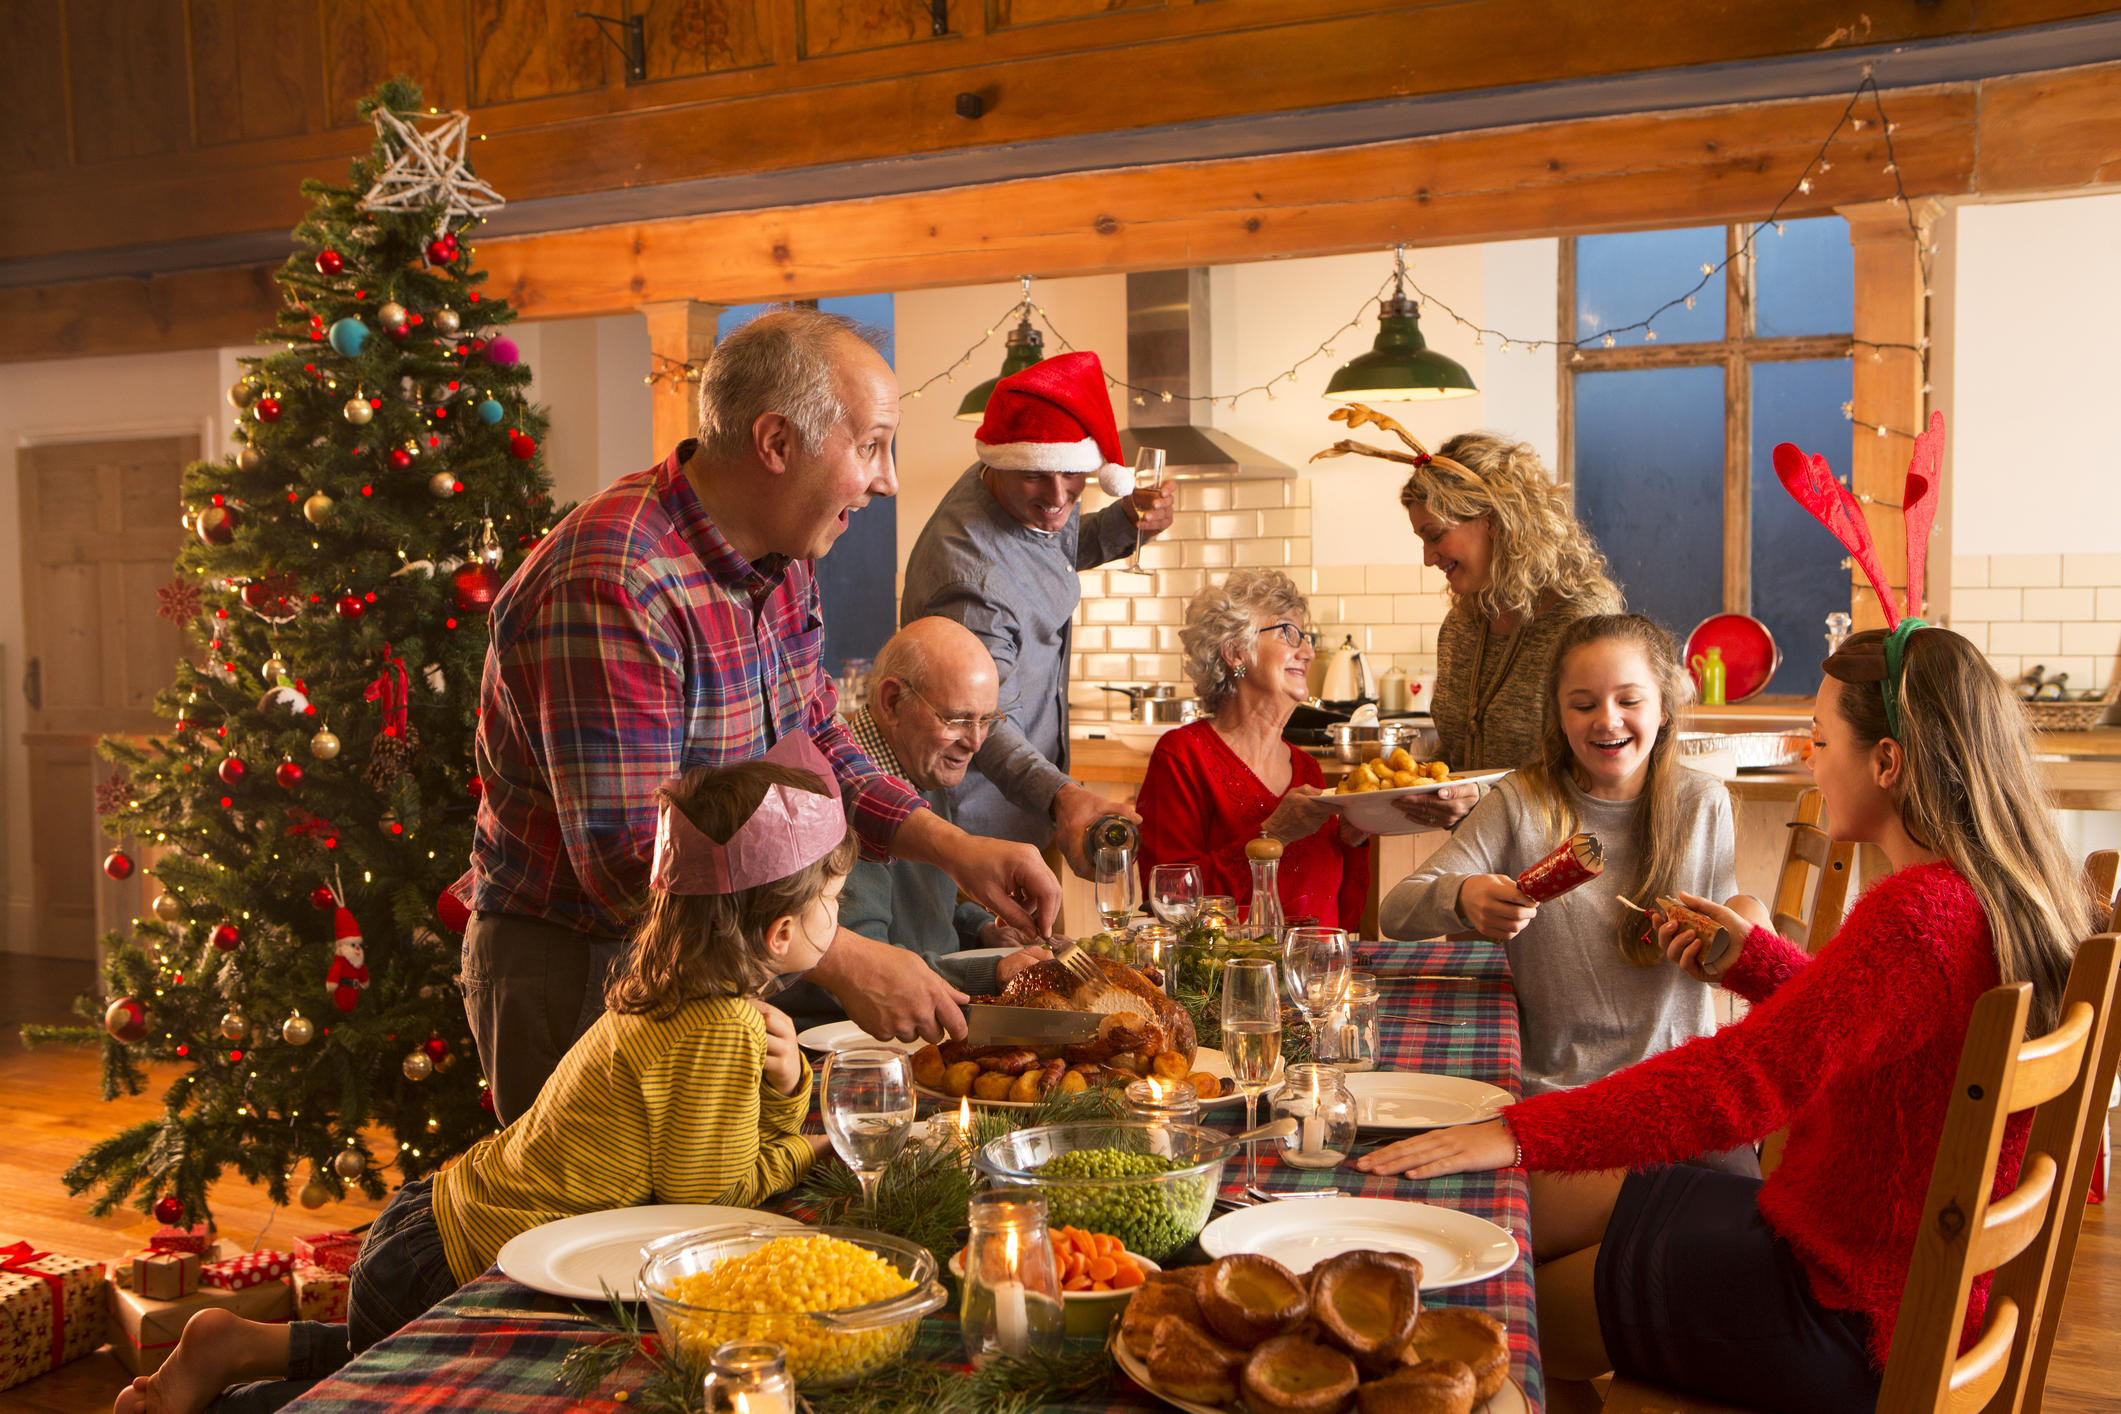 Family gathering around the table at Christmas time